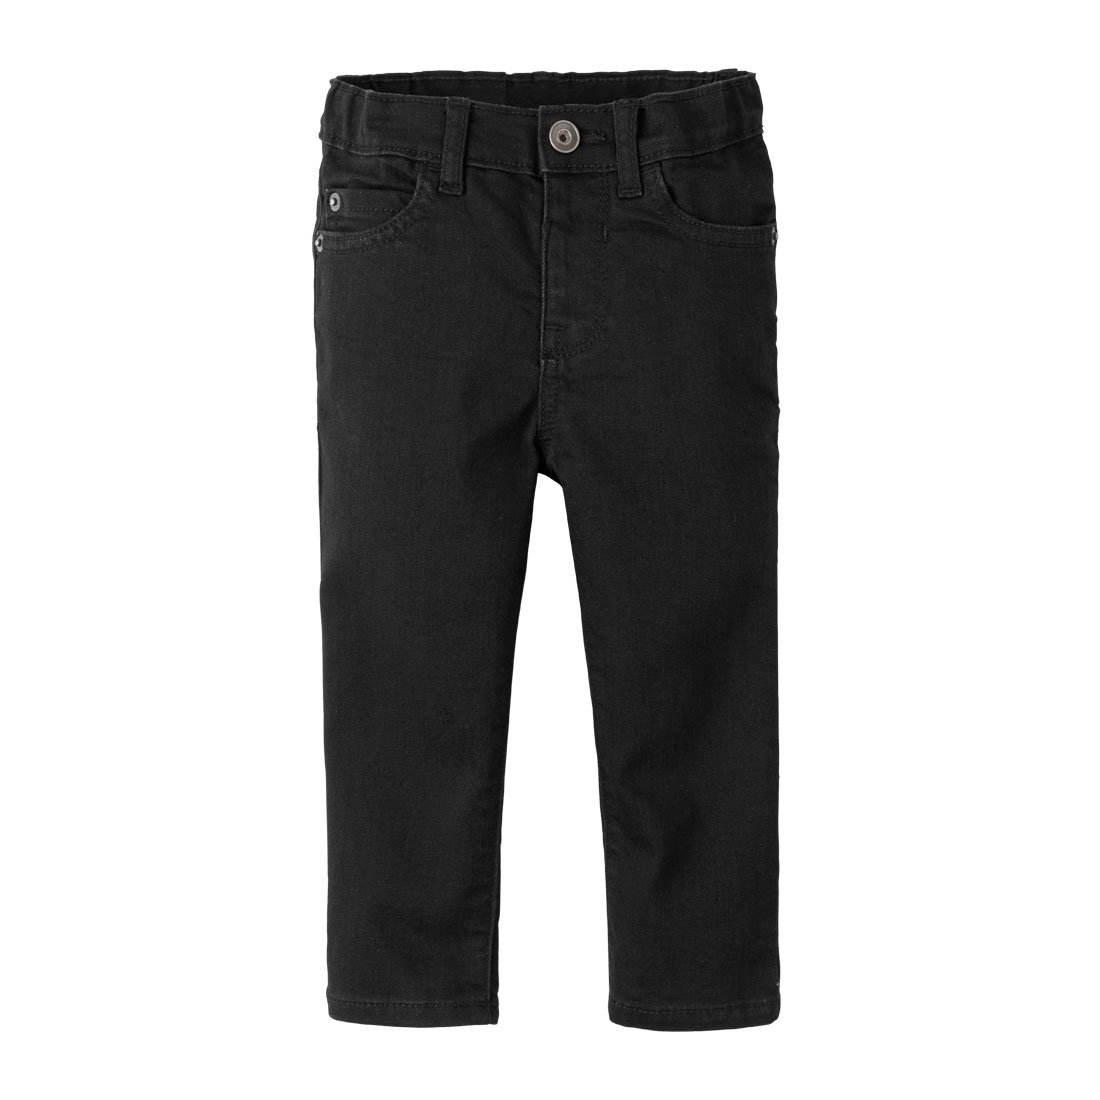 The Children's Place Boys' Skinny Jeans The Children' s Place